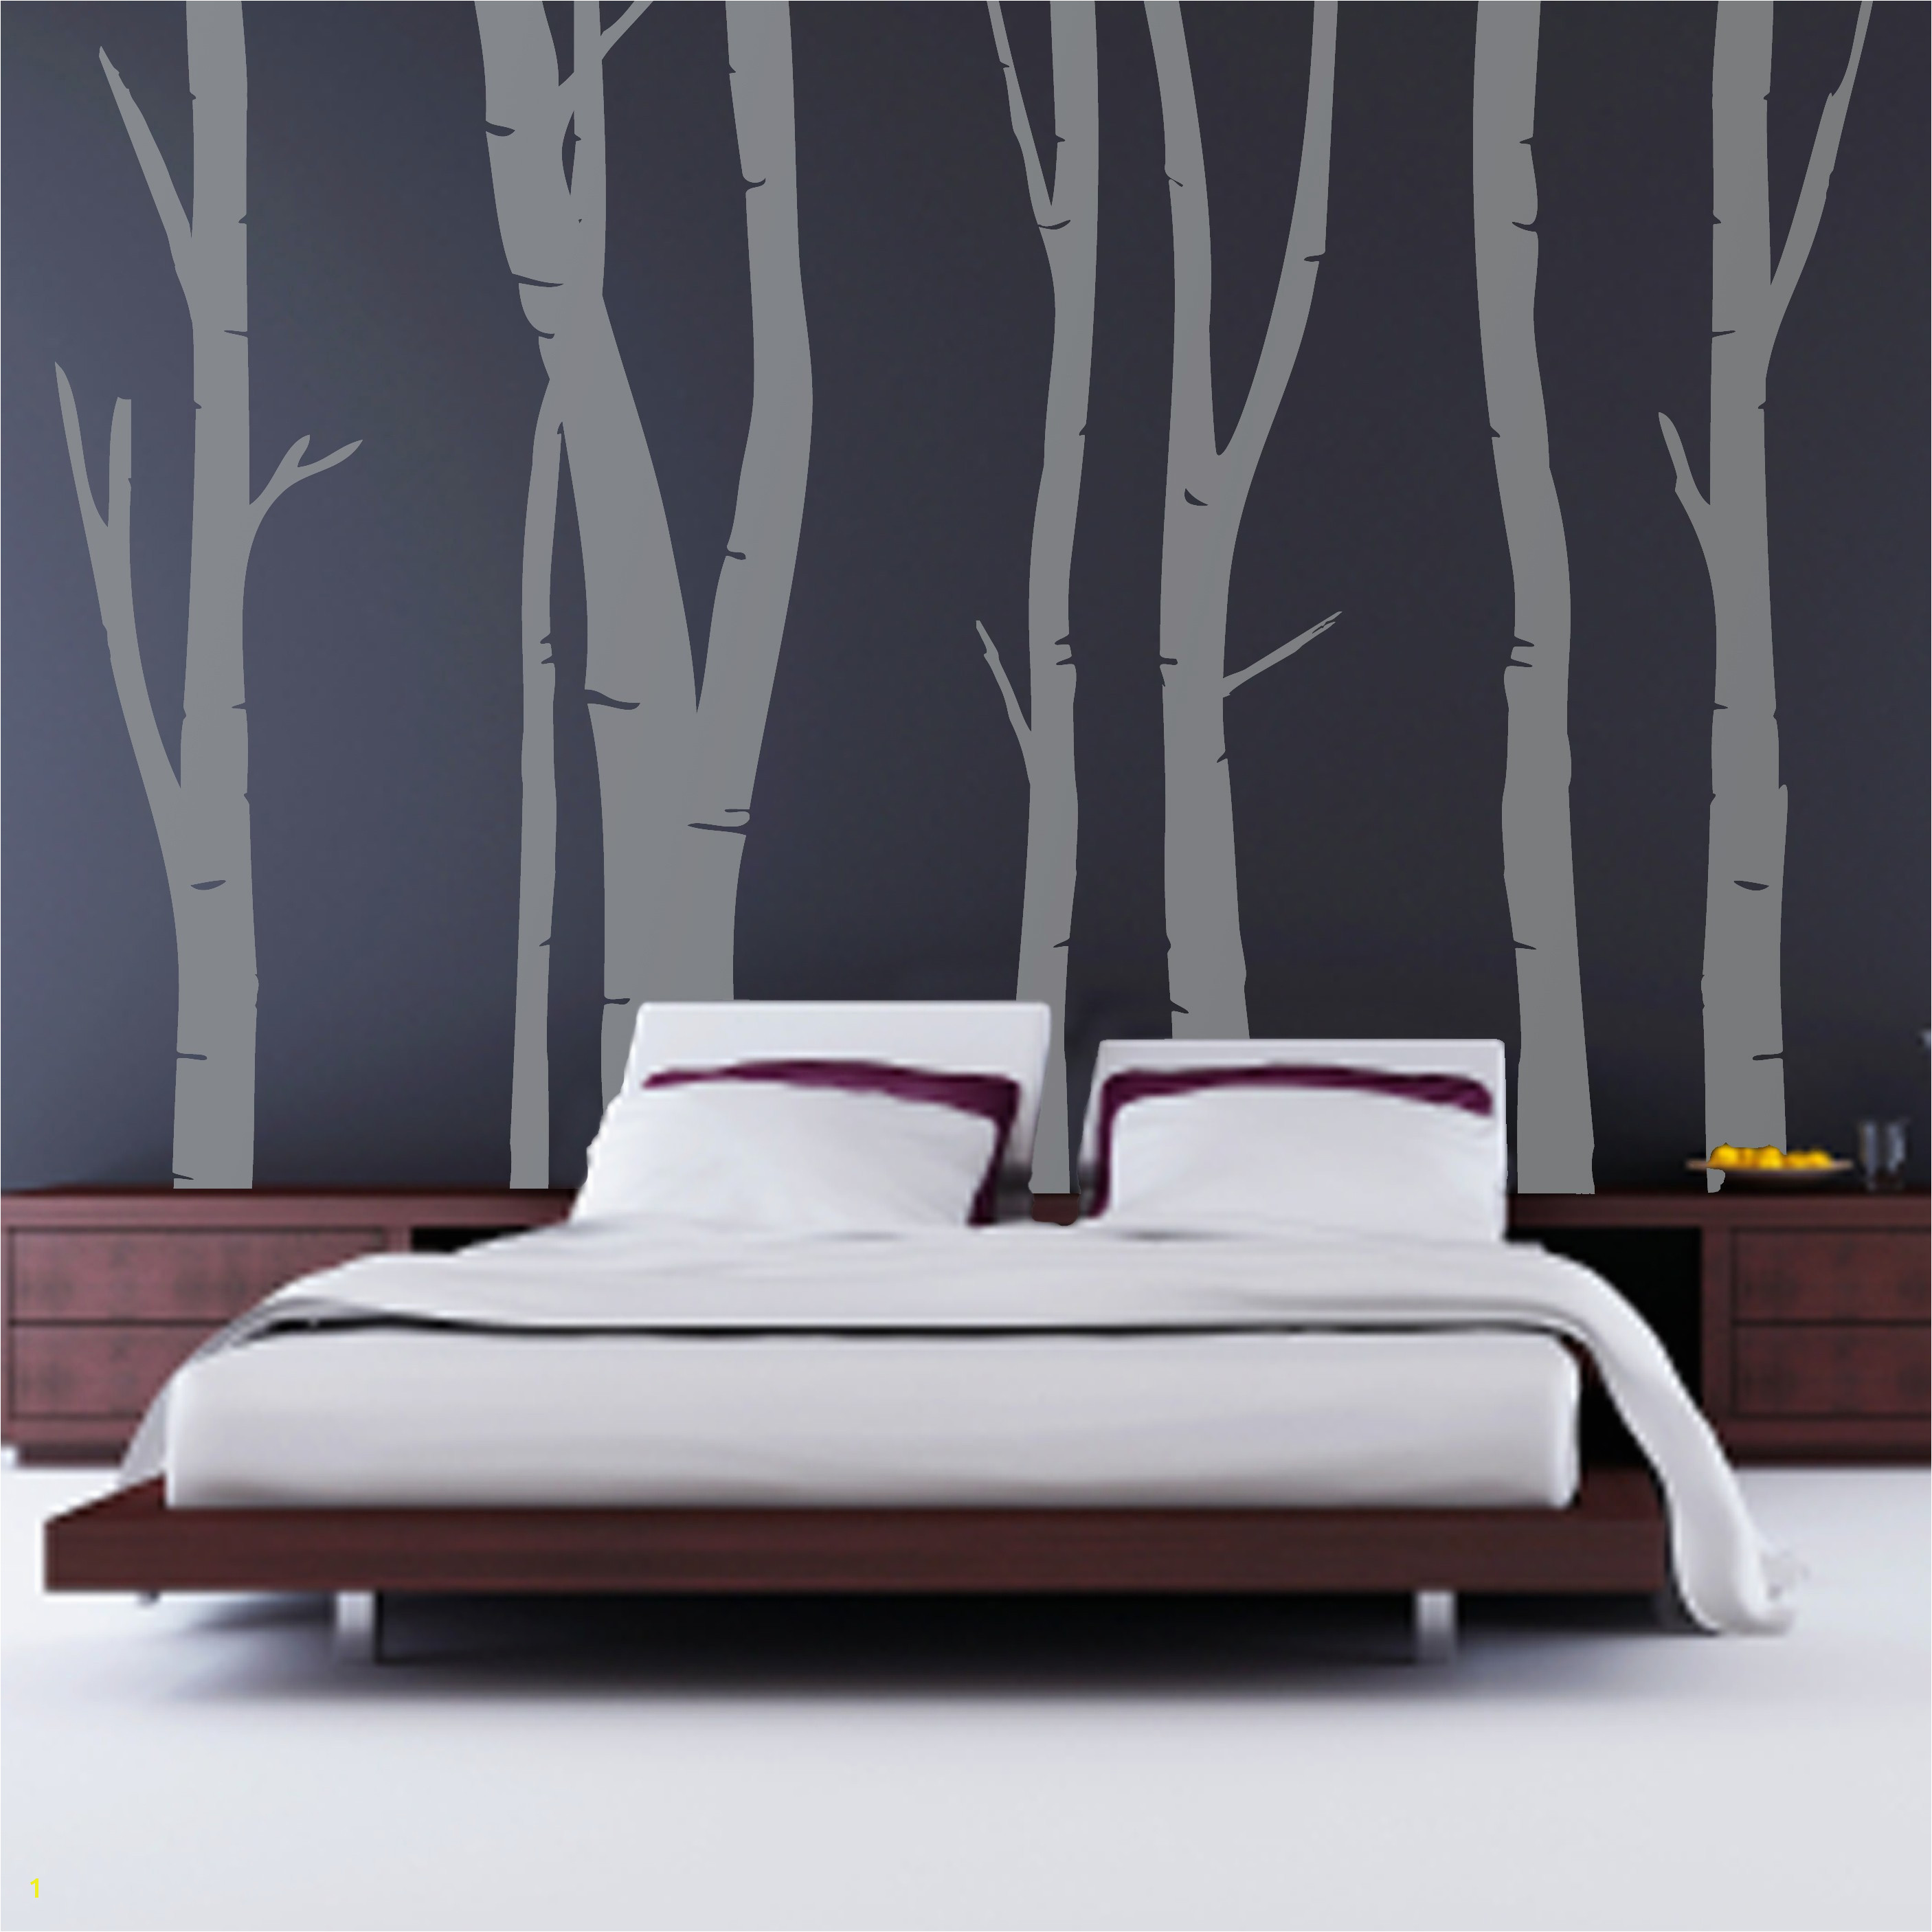 Wall Decals For Bedroom Unique 1 Kirkland Wall Decor Home Design 0d In Oriental Home Themes